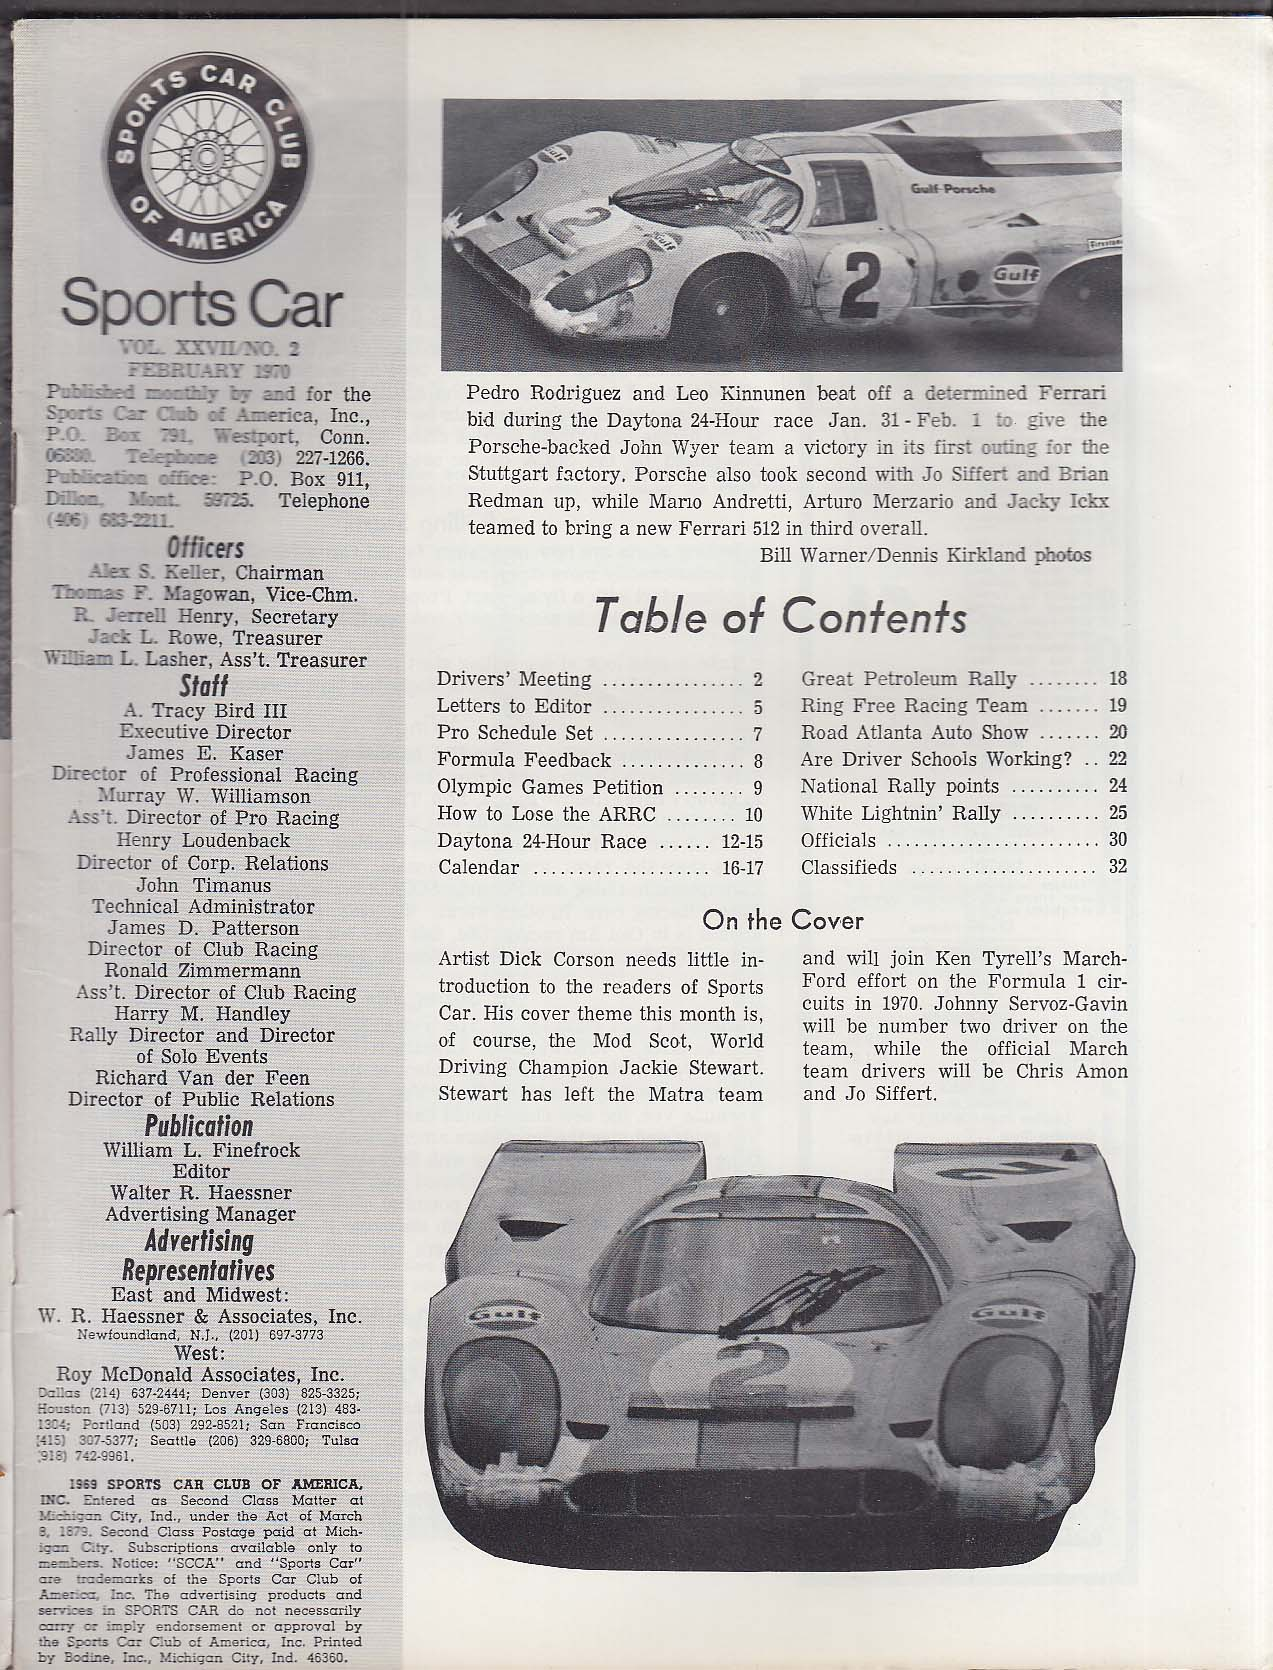 SCCA SPORTS CAR Olympic Games Daytona 24-Hour Race Atlanta Show ++ 2 1970